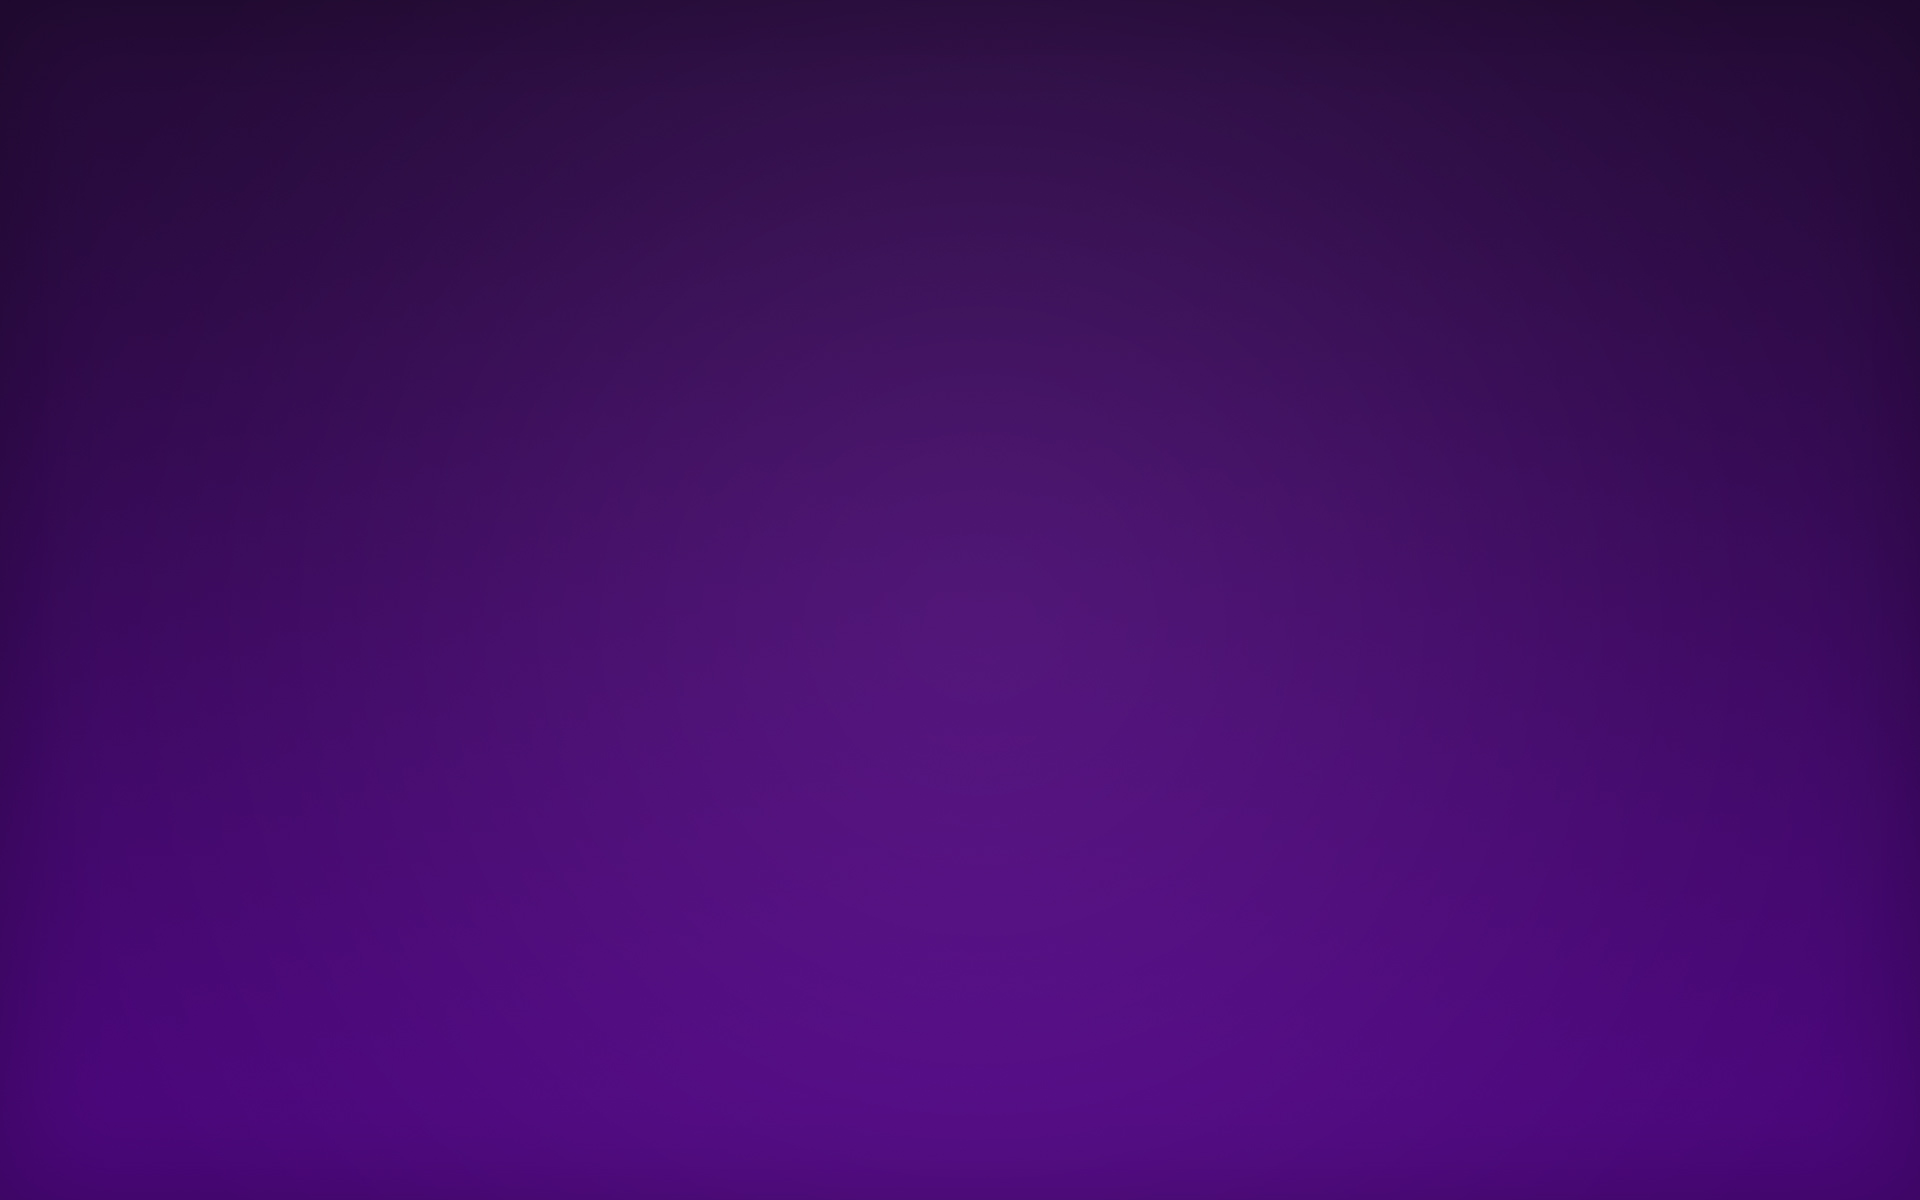 Purple Desktop Wallpaper Wallpaper